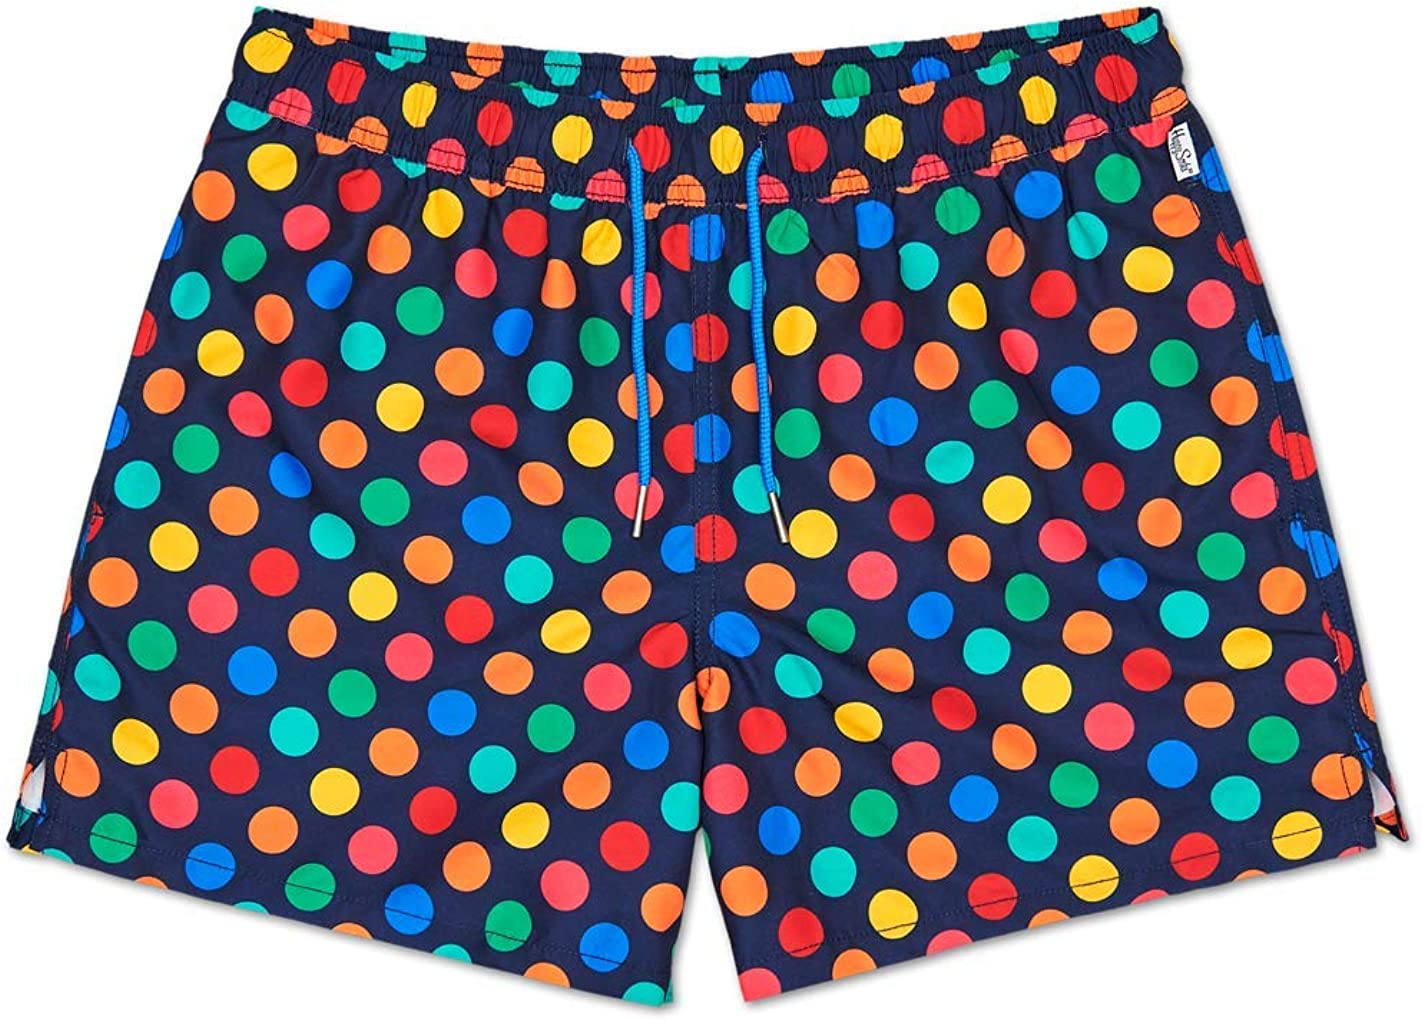 HappySocks Banana Swim Shorts